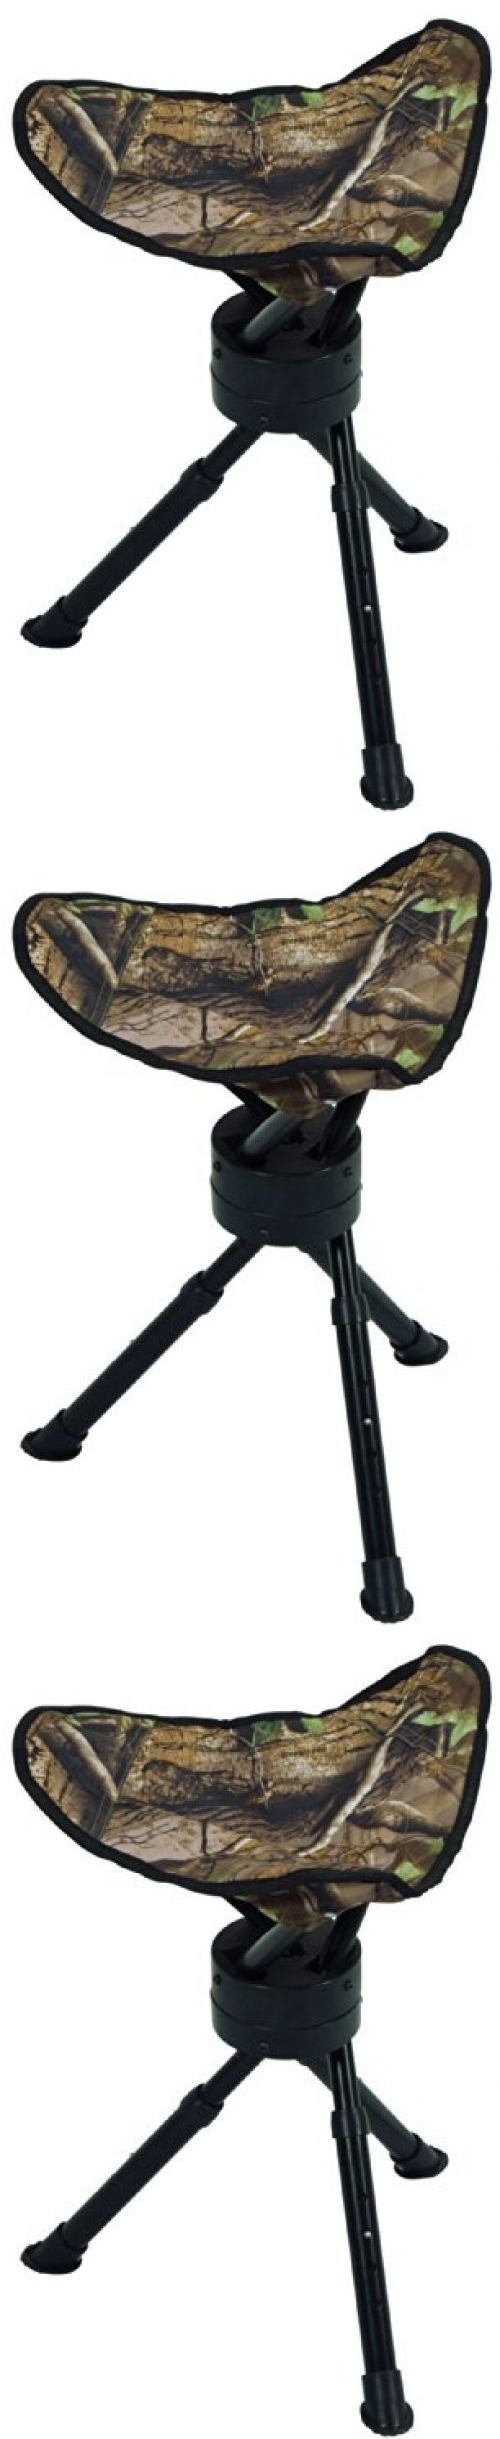 Hunting Seats And Chairs Wooden Dining 52507 Stool Chair Tripod Swivel Camo Portable Compact Deer Tree Stand Seat Buy It Now Only 31 68